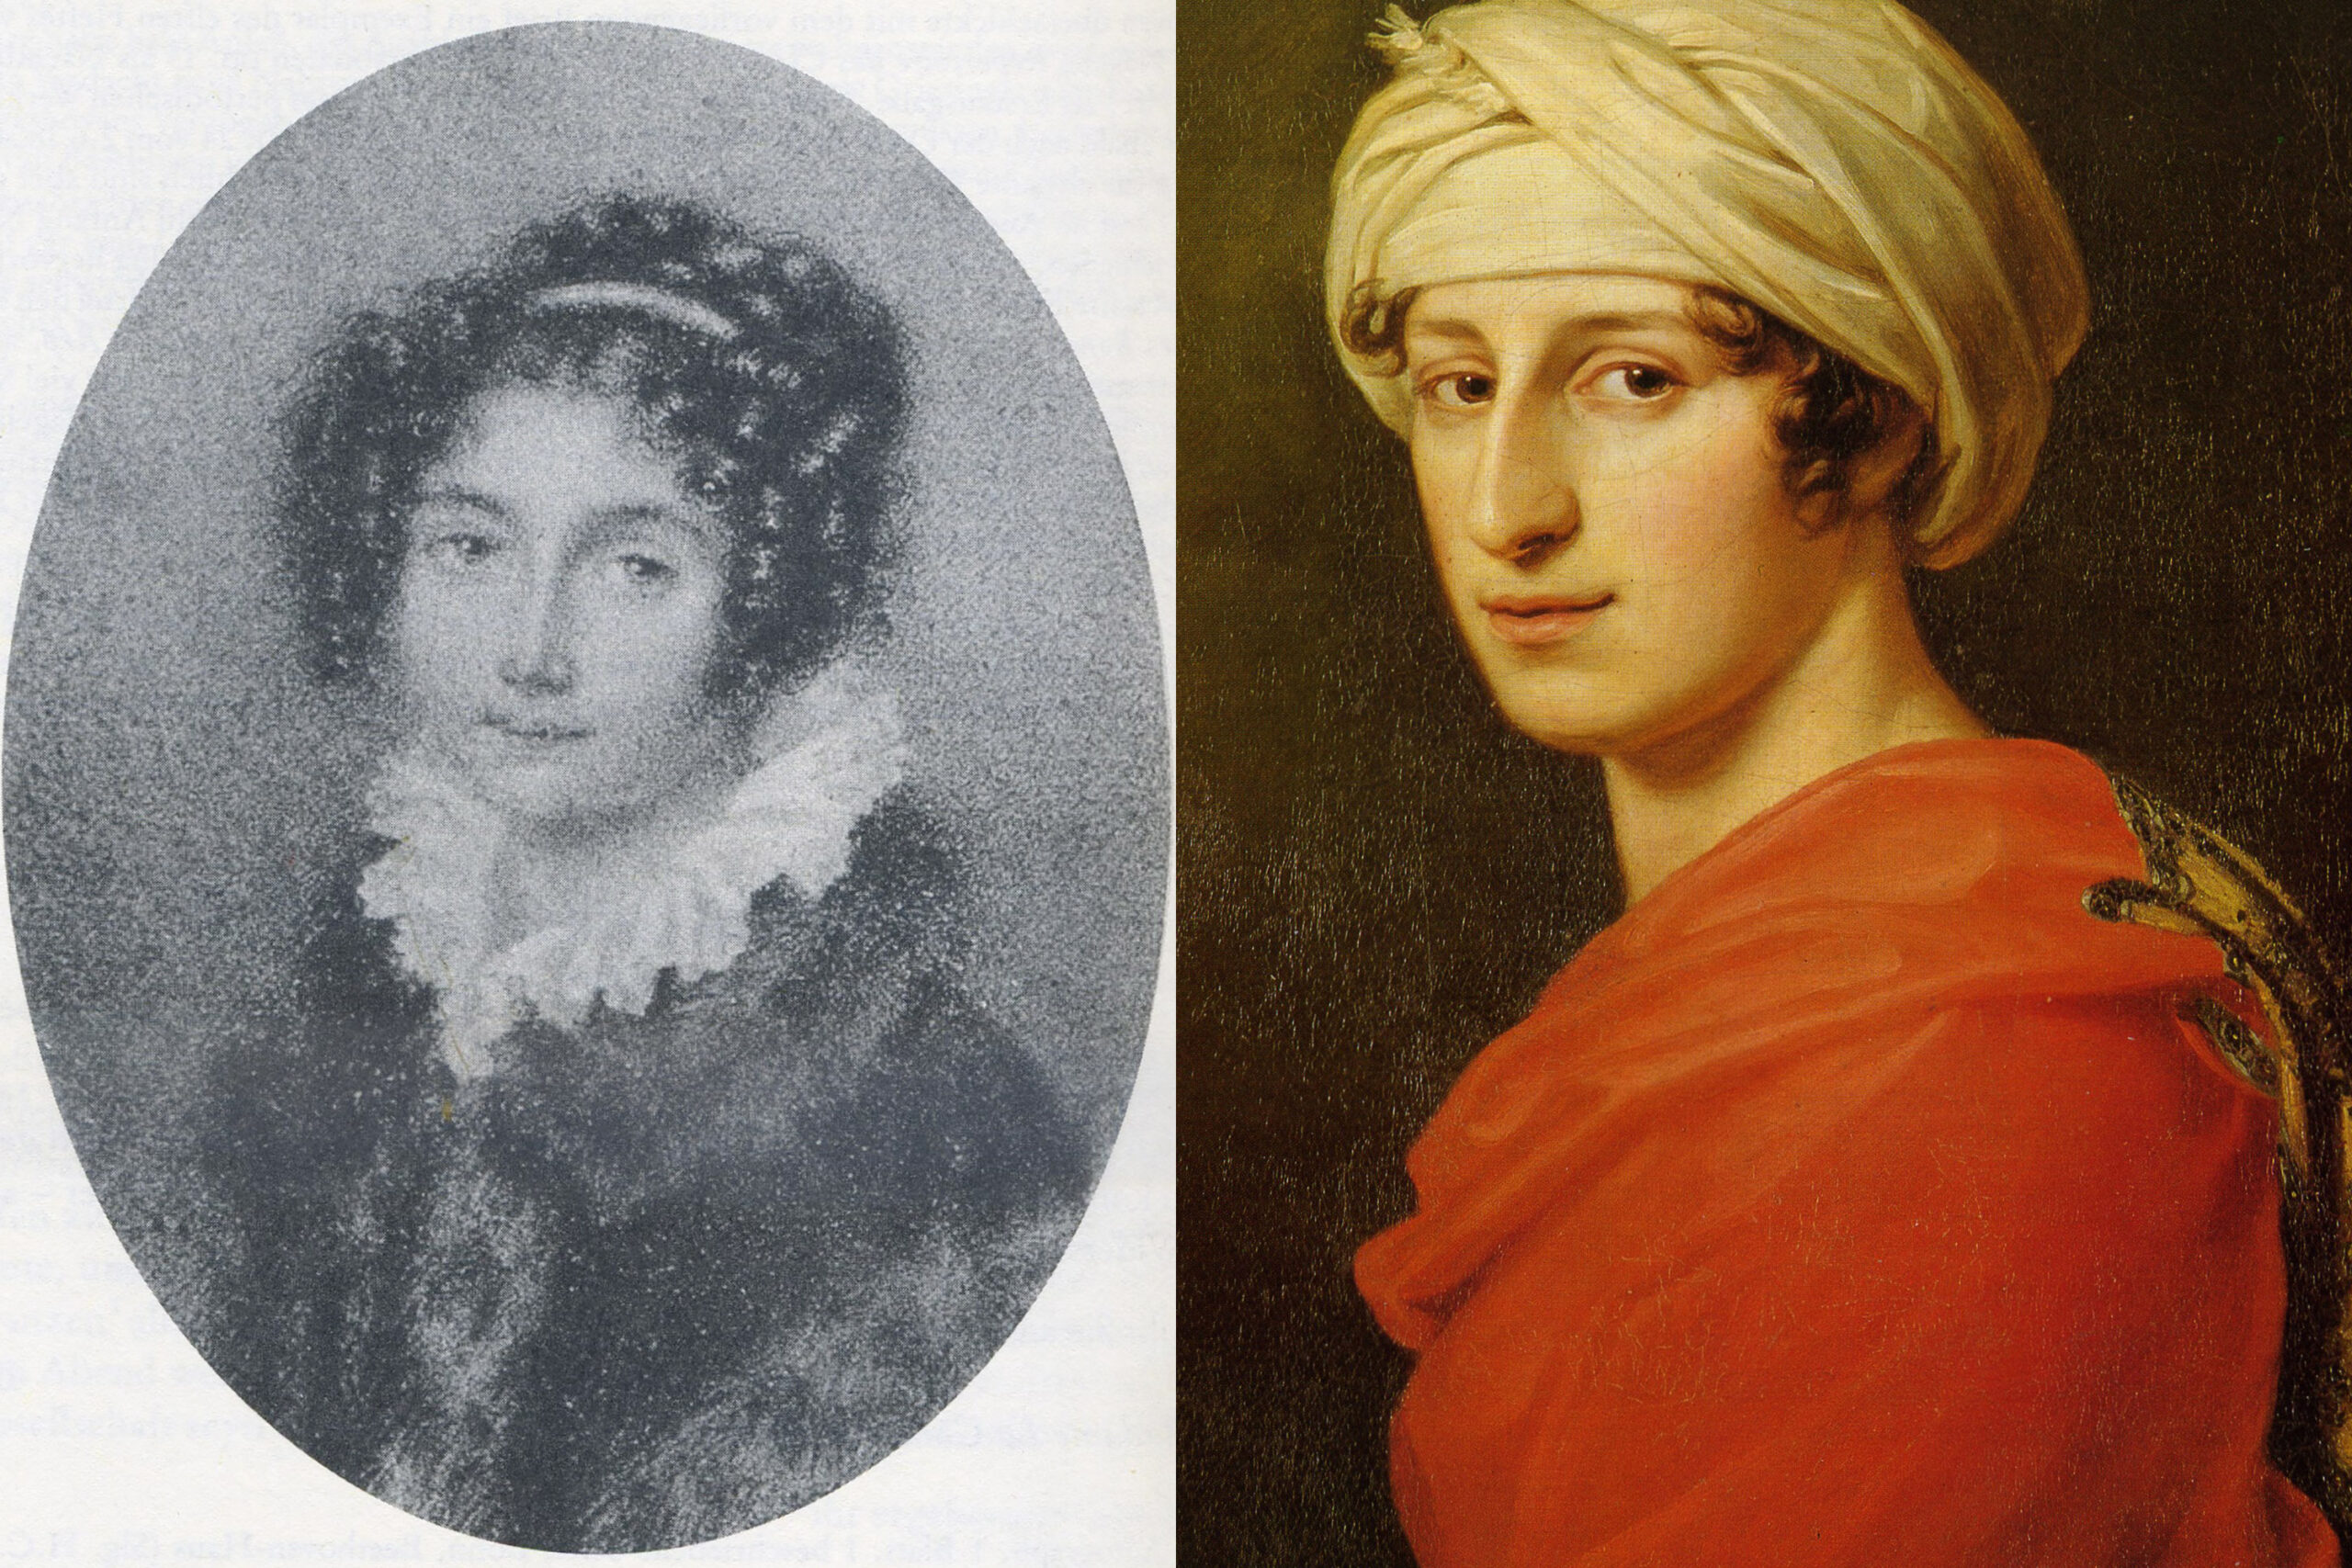 Josephine Von Brunswik and Antonie Brentano